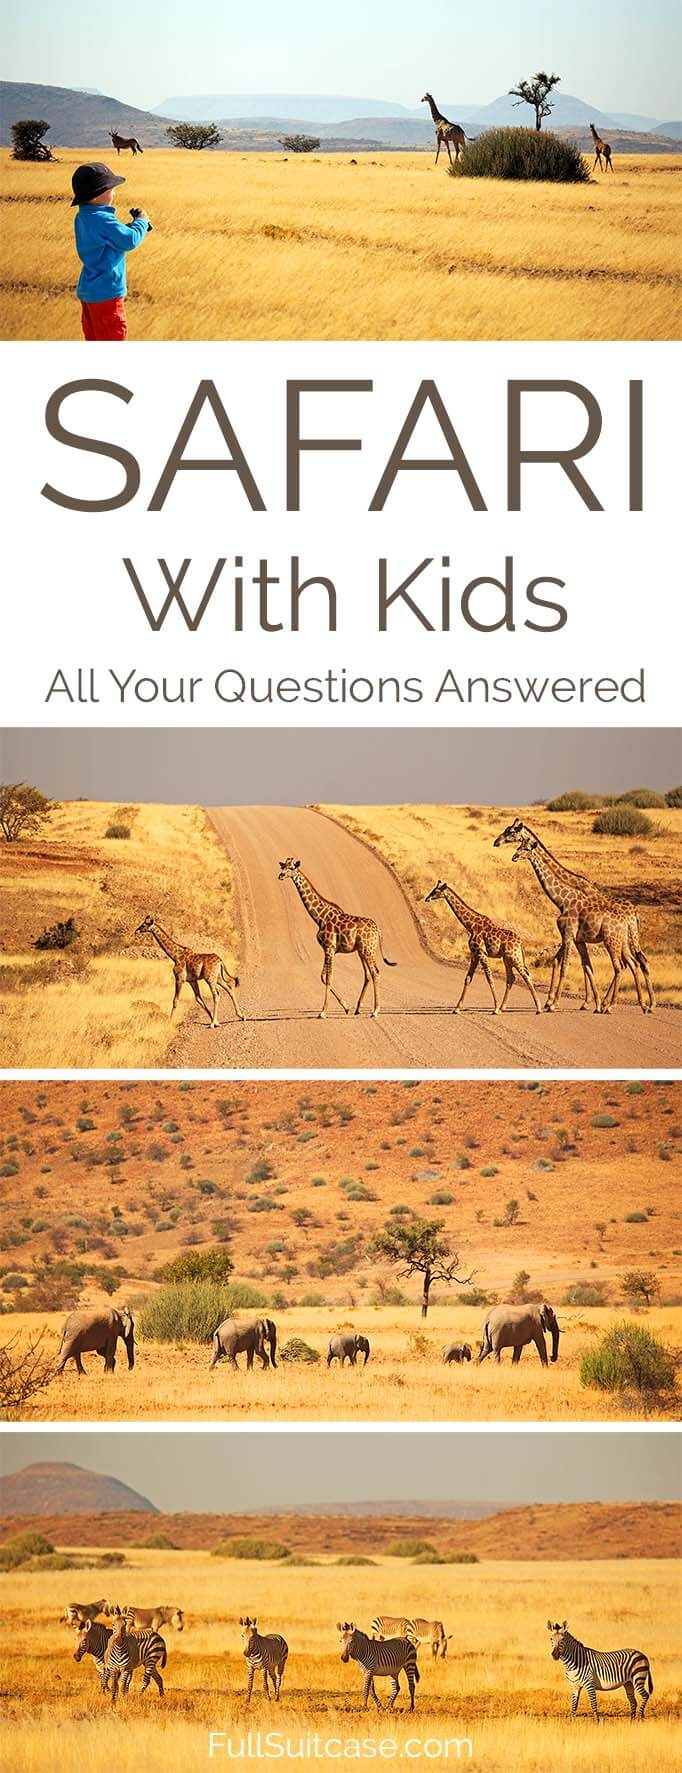 Everything you may want to know about going on an African safari with kids